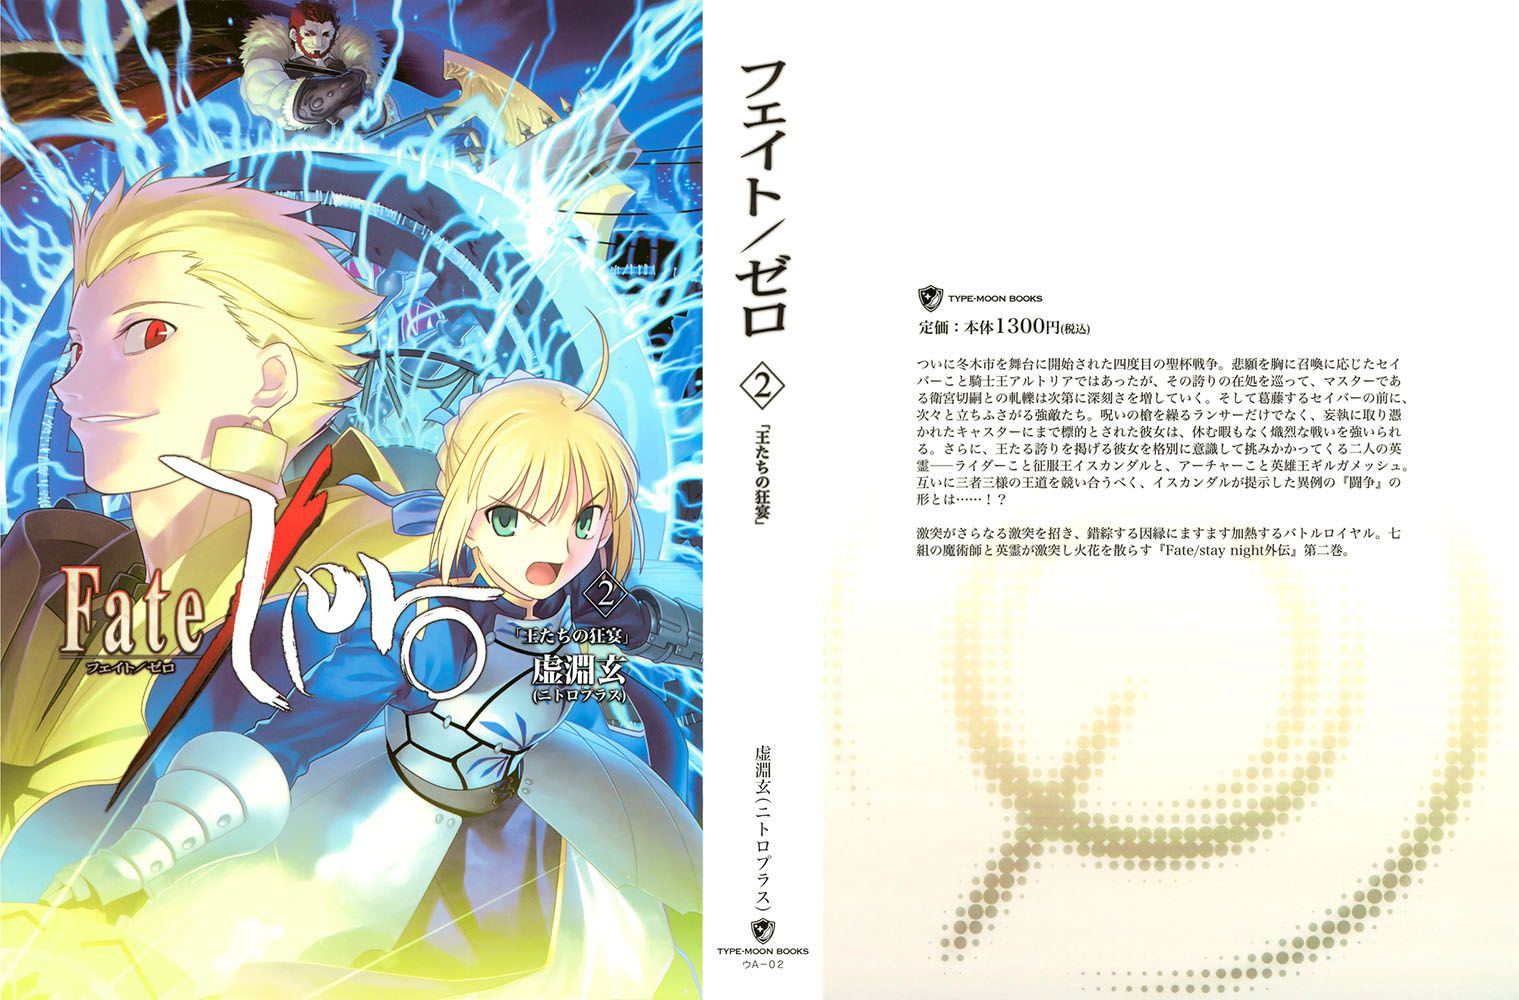 Fate/Zero Vol 2 - Full Text